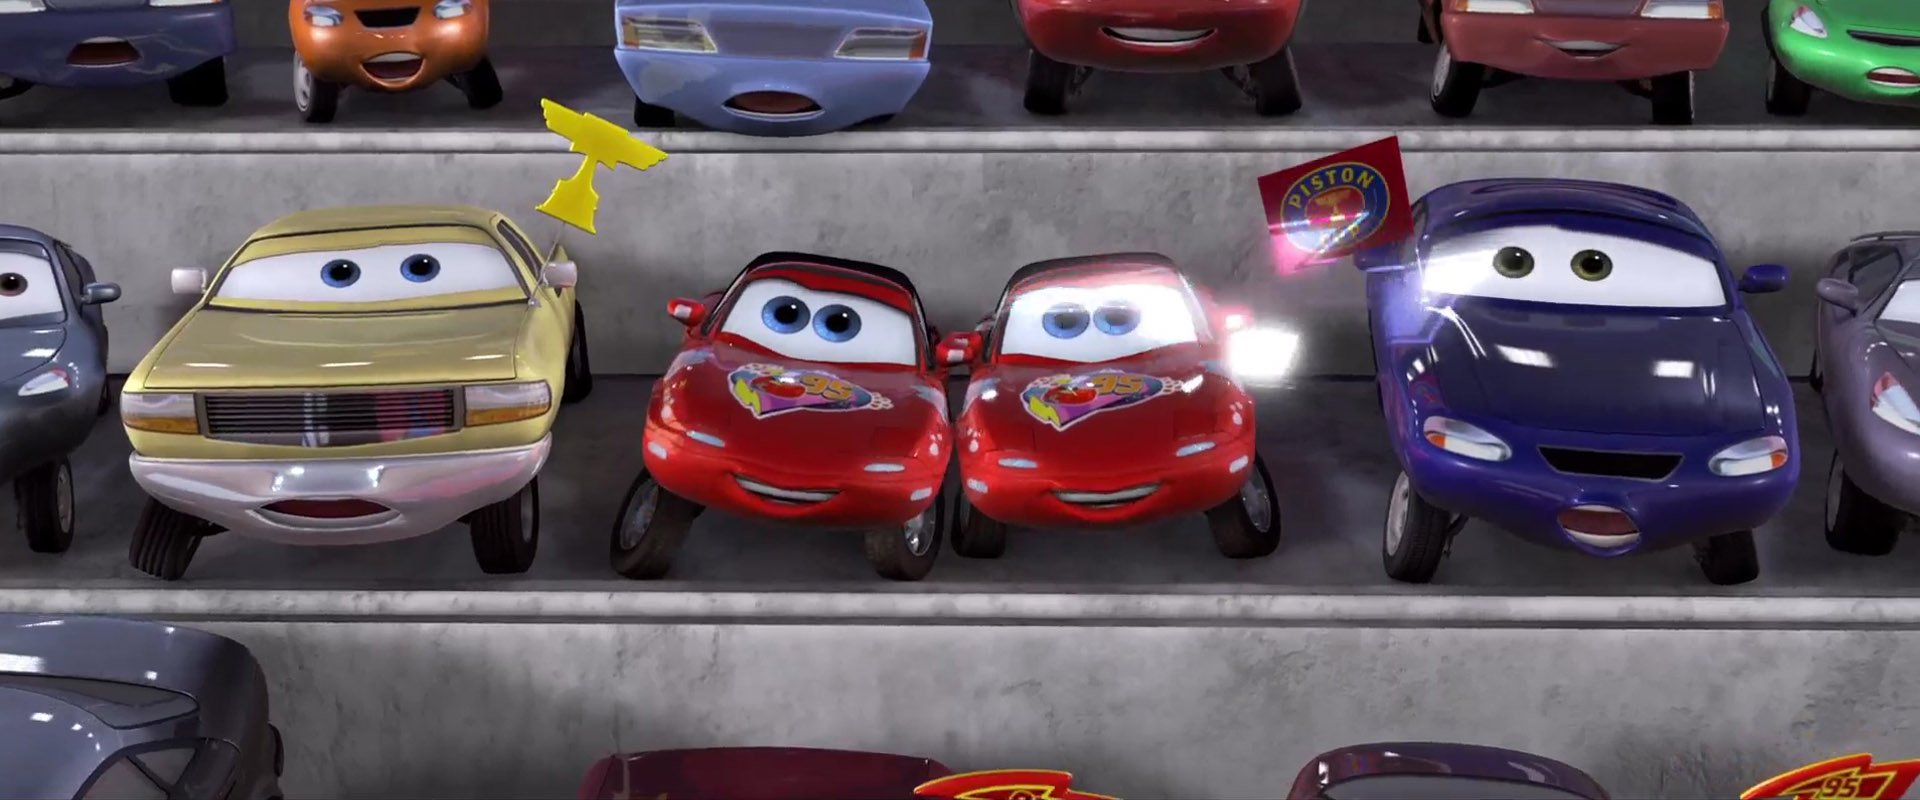 jay w personnage character pixar disney cars